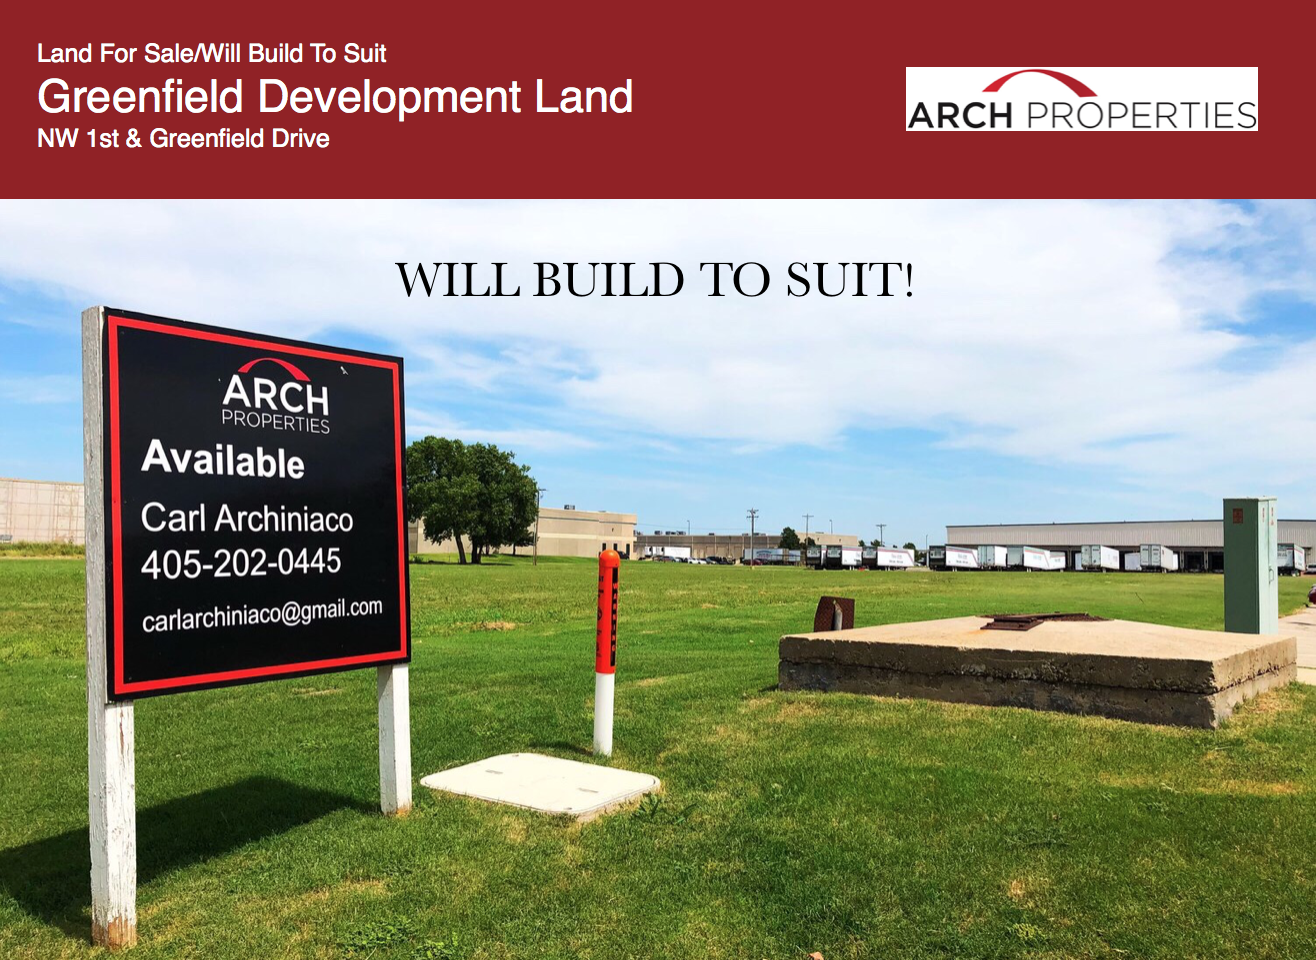 Greenfield Ozark at NW 1st and Greenfield Drive in Oklahoma City  Location: NW 1st St & Greenfield Drive, Oklahoma City, OK  Total Square Footage: 145,490 SF (3.34 AC+/-)  Price: $3.75/SF  Will build to suit.